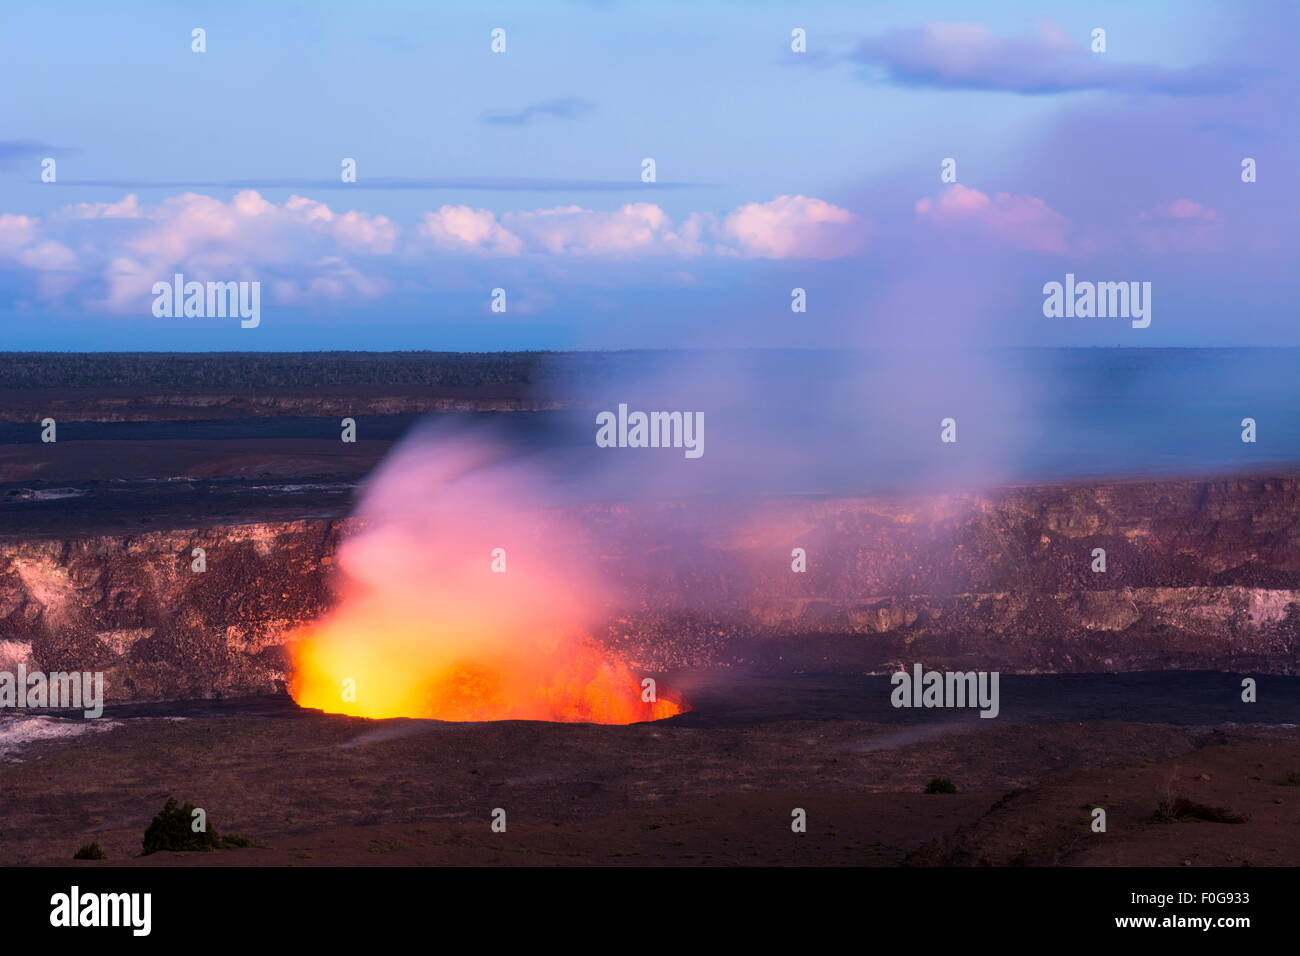 As the sun sets Kilauea volcano begins to show the hot lava glow of its active vent, spewing out smoke as the molten - Stock Image